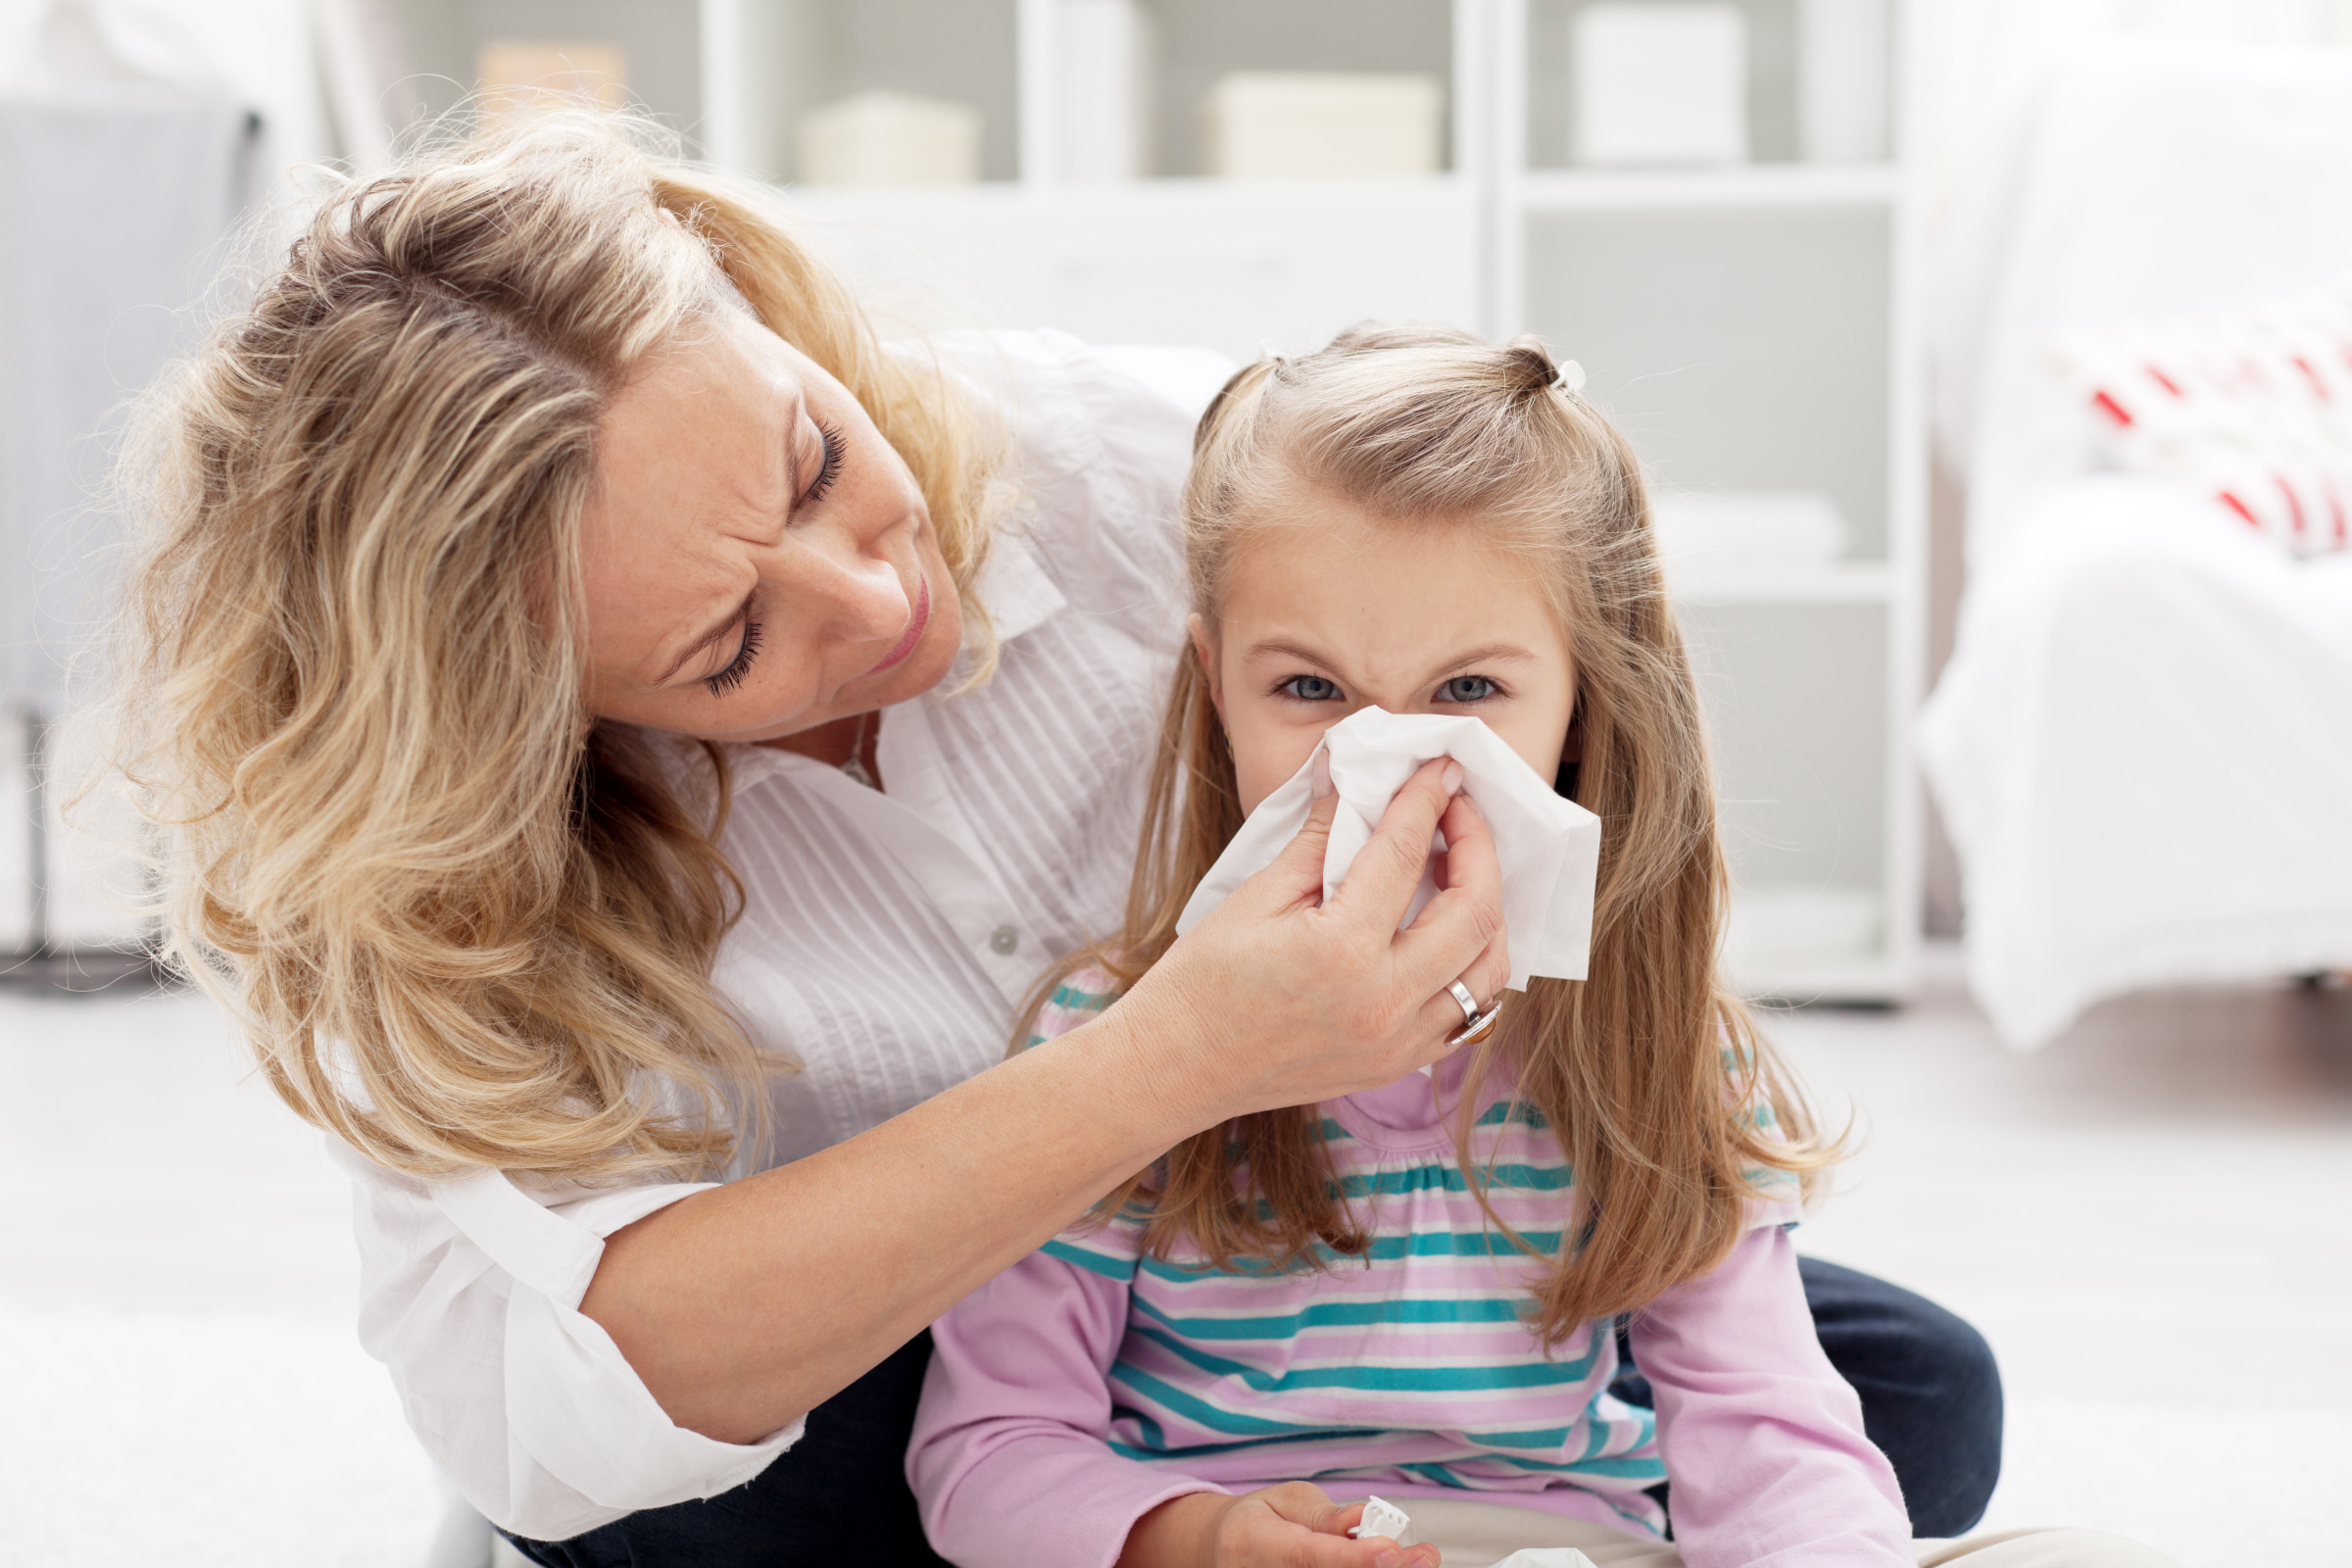 RID YOUR HOME OF ALLERGENS